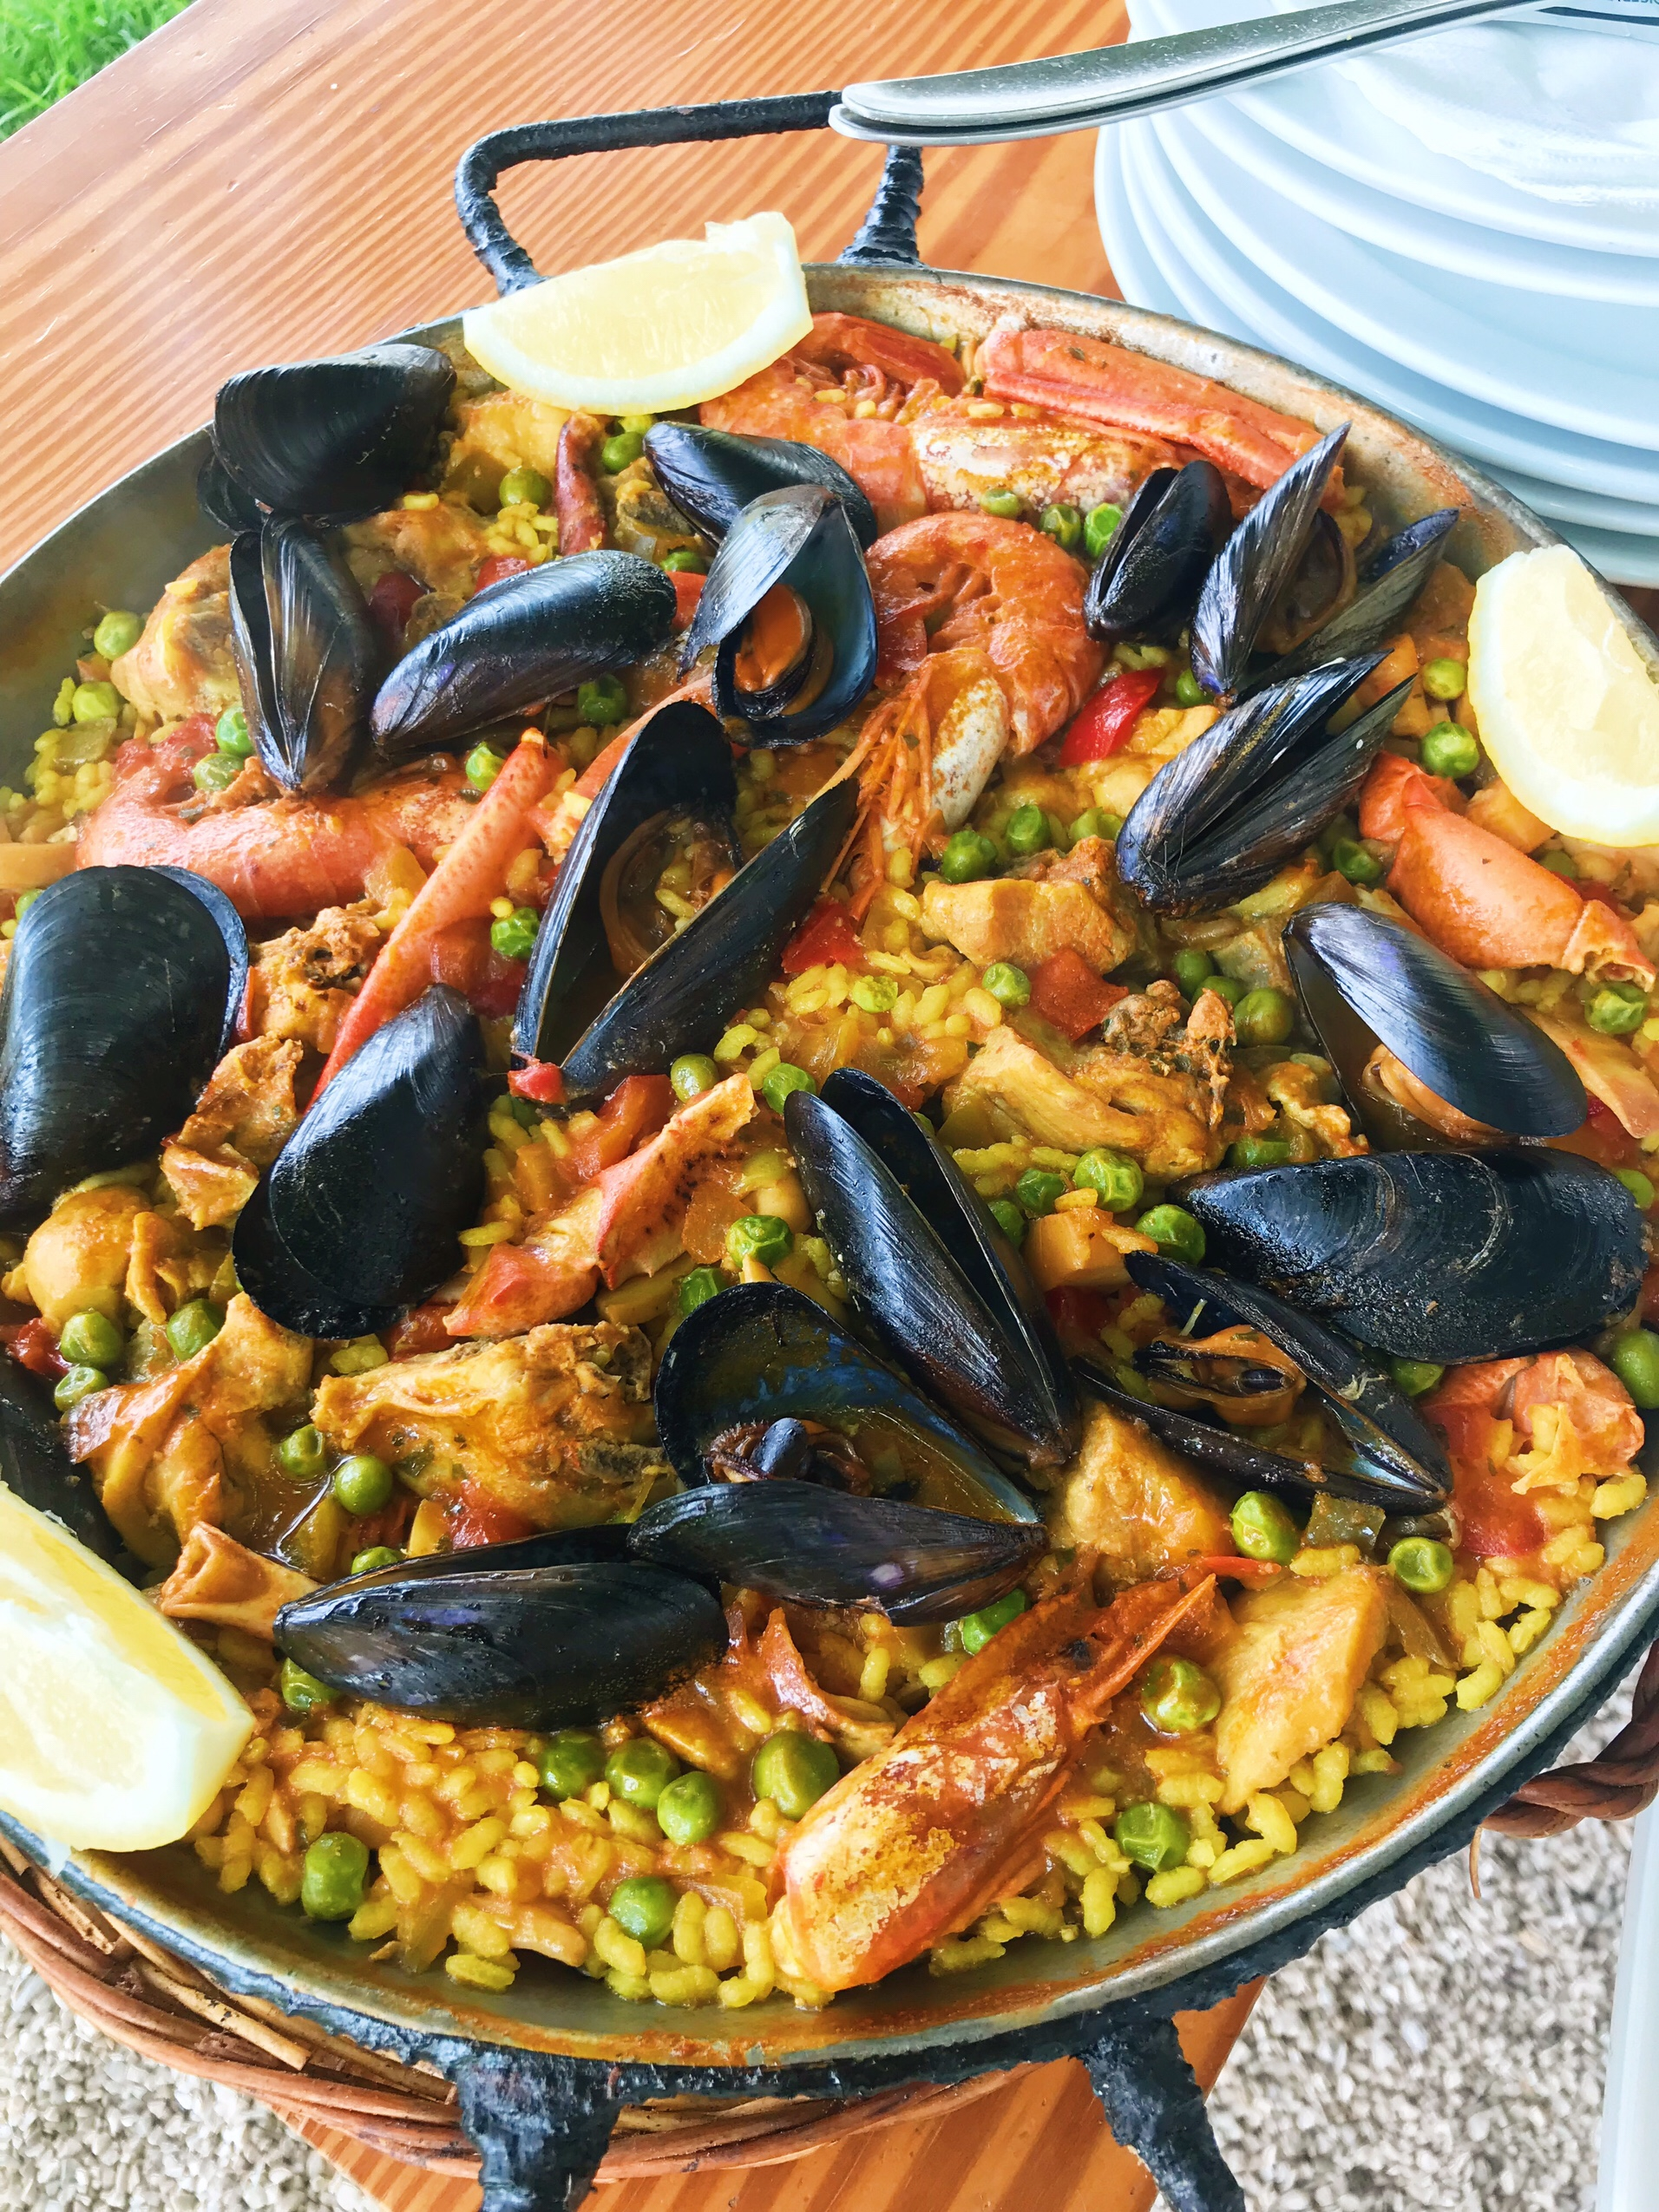 Picture of paella at Binimel-la in Menorca